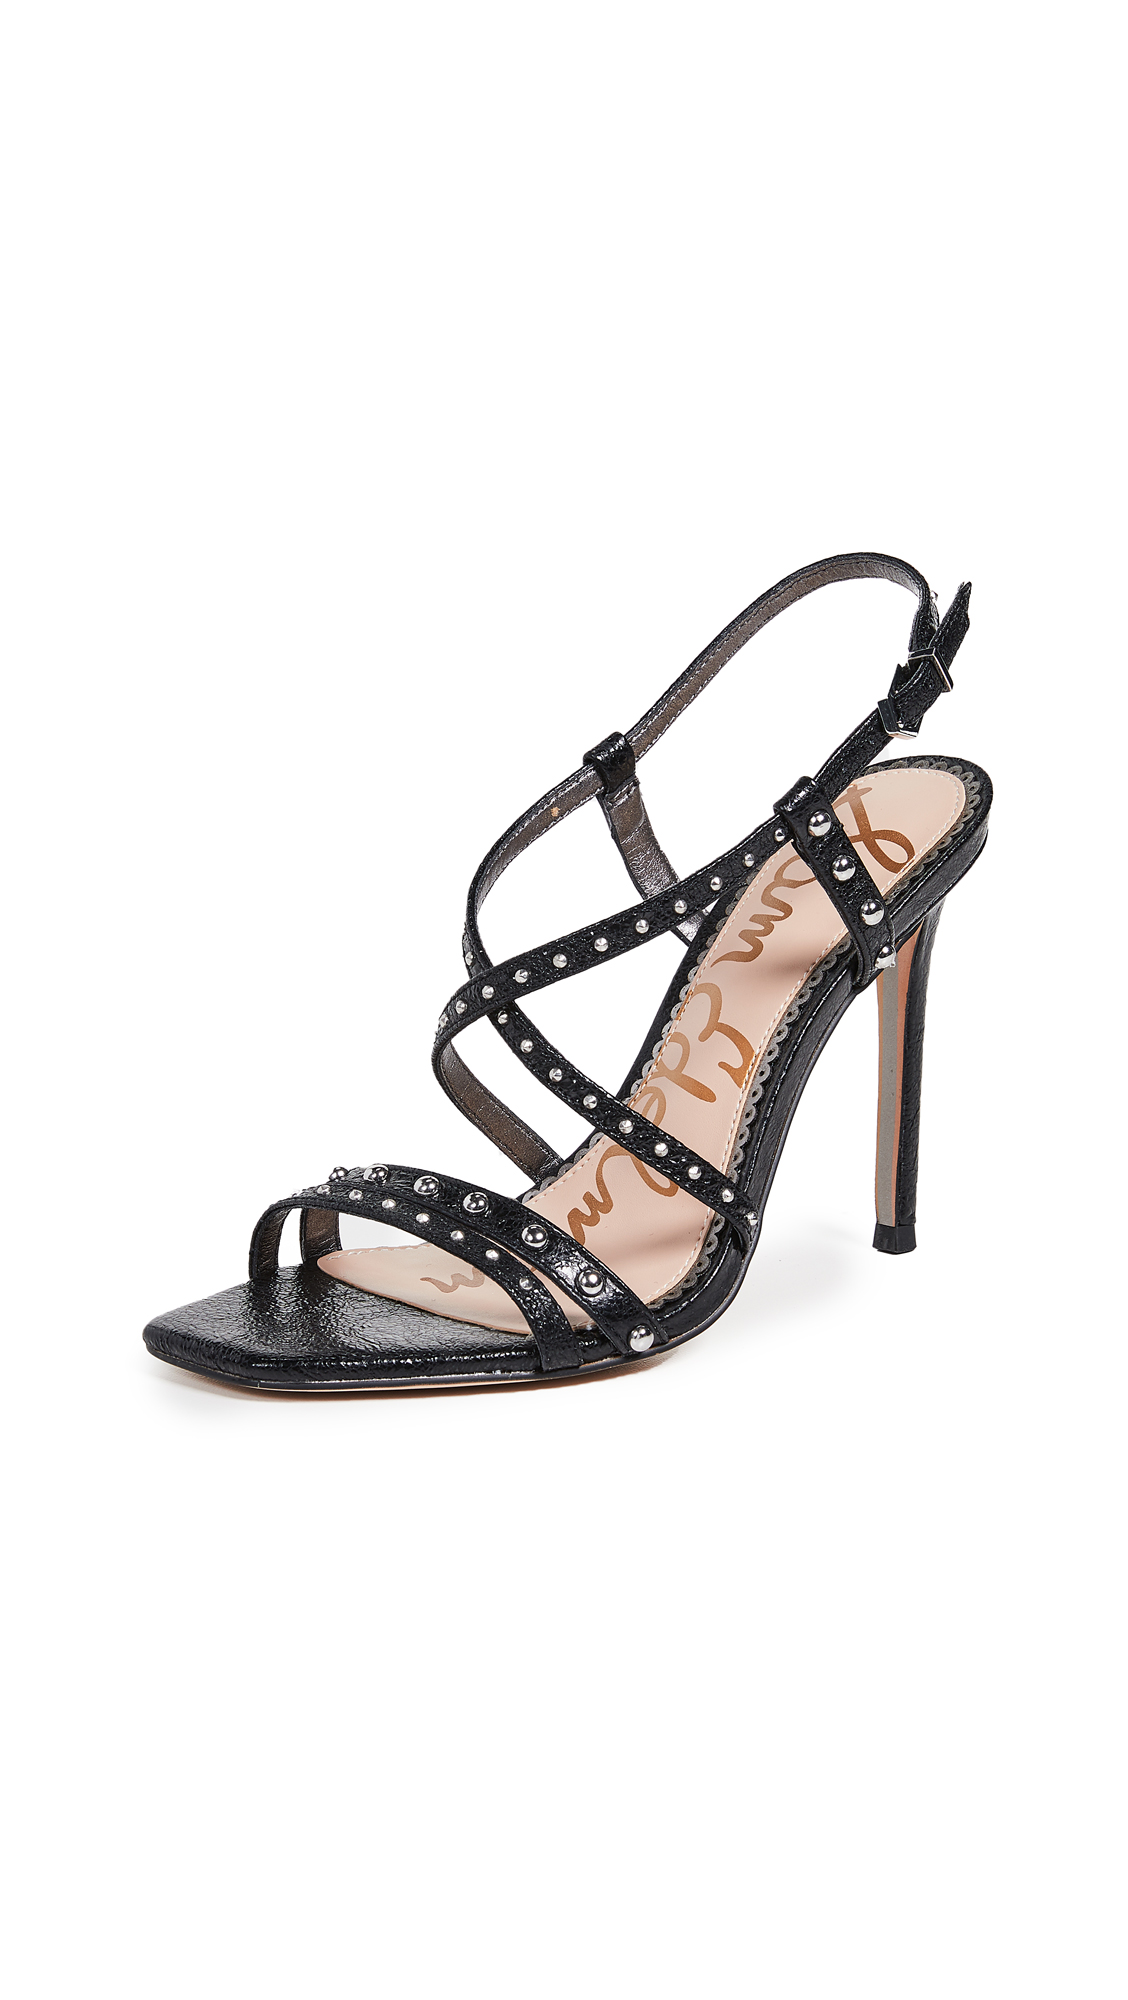 Sam Edelman Lennox Sandals - Black